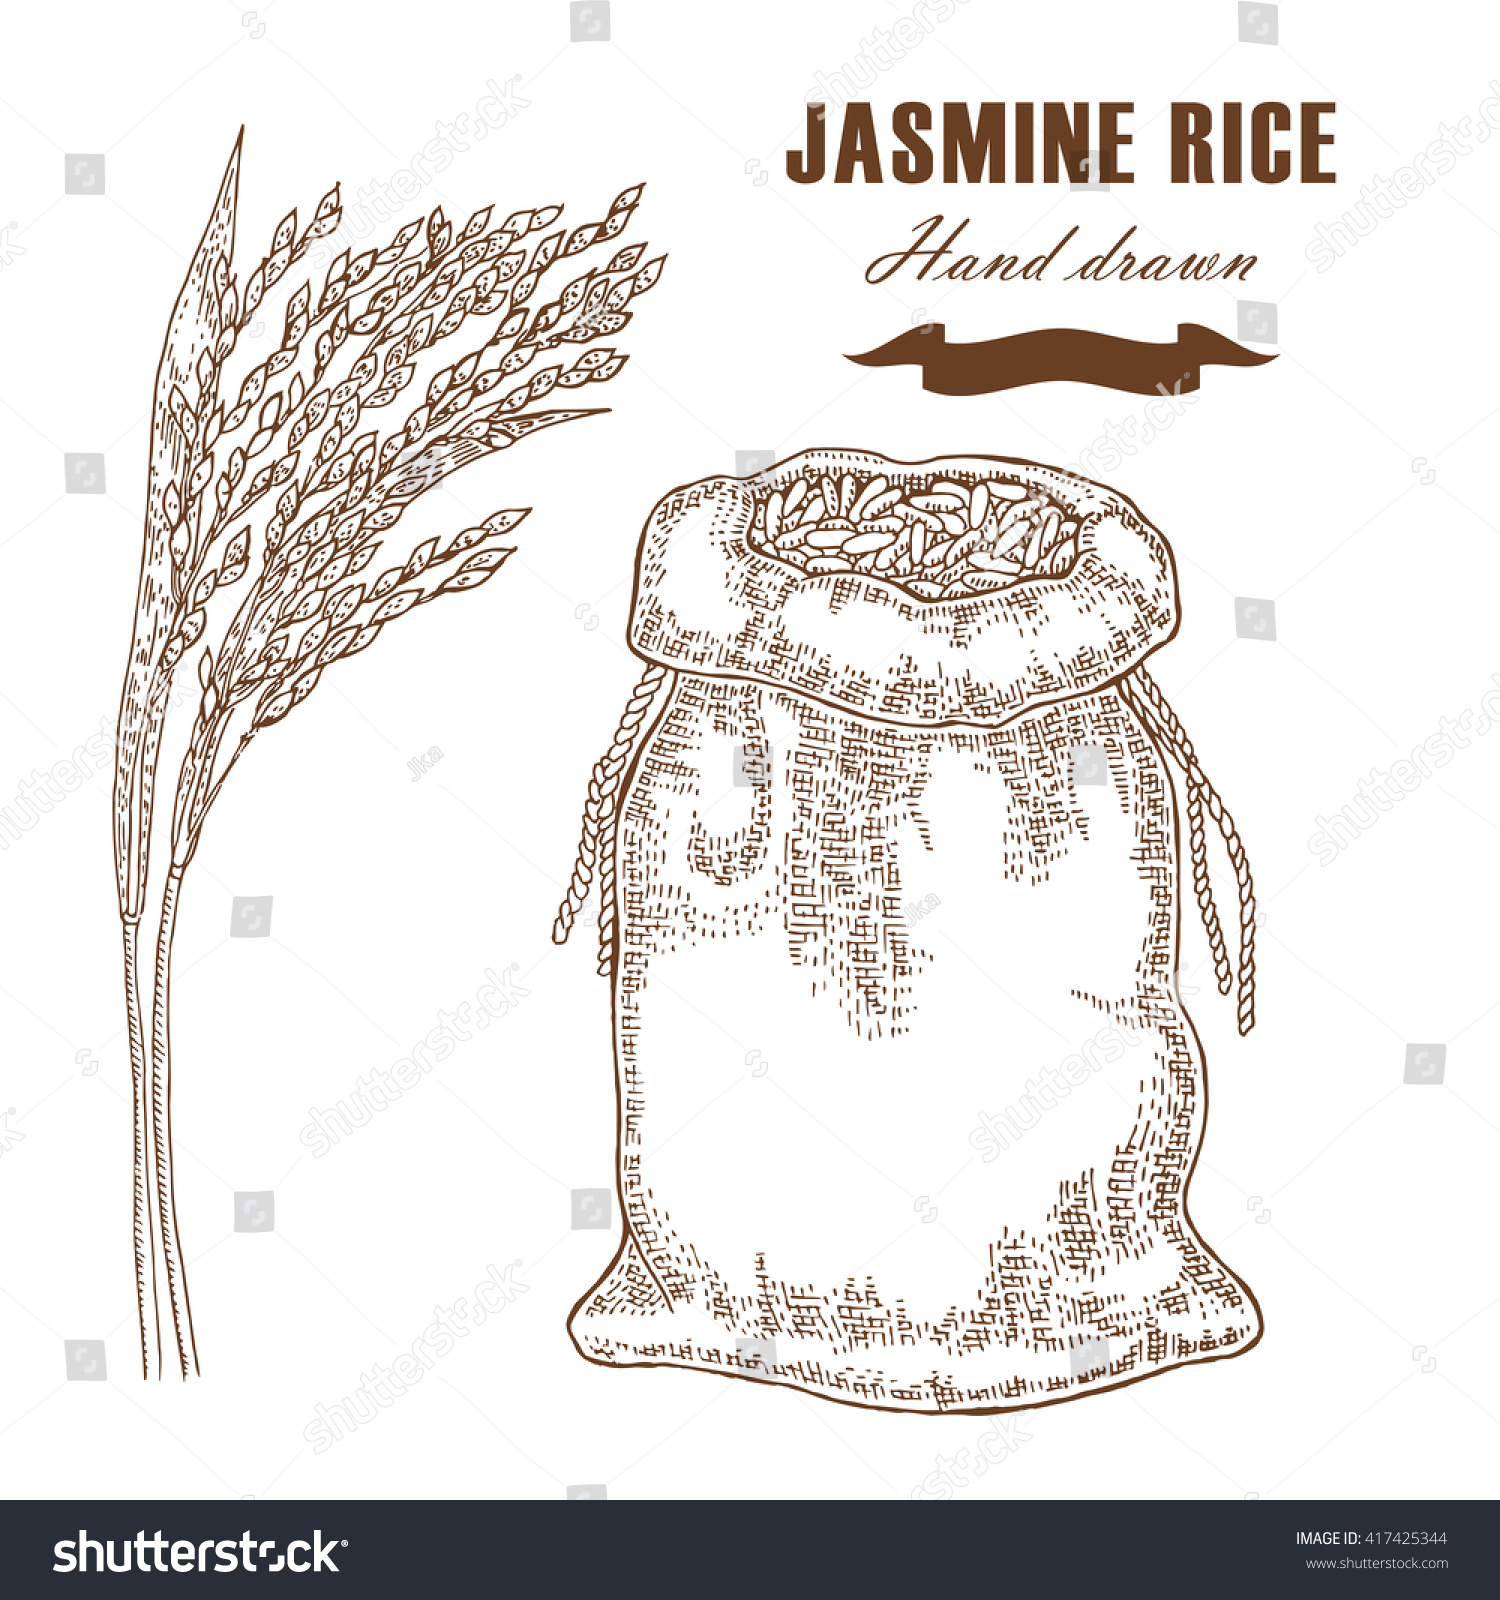 hight resolution of thai jasmine rice in sack rice plant hand drawn vector illustration in sketch style